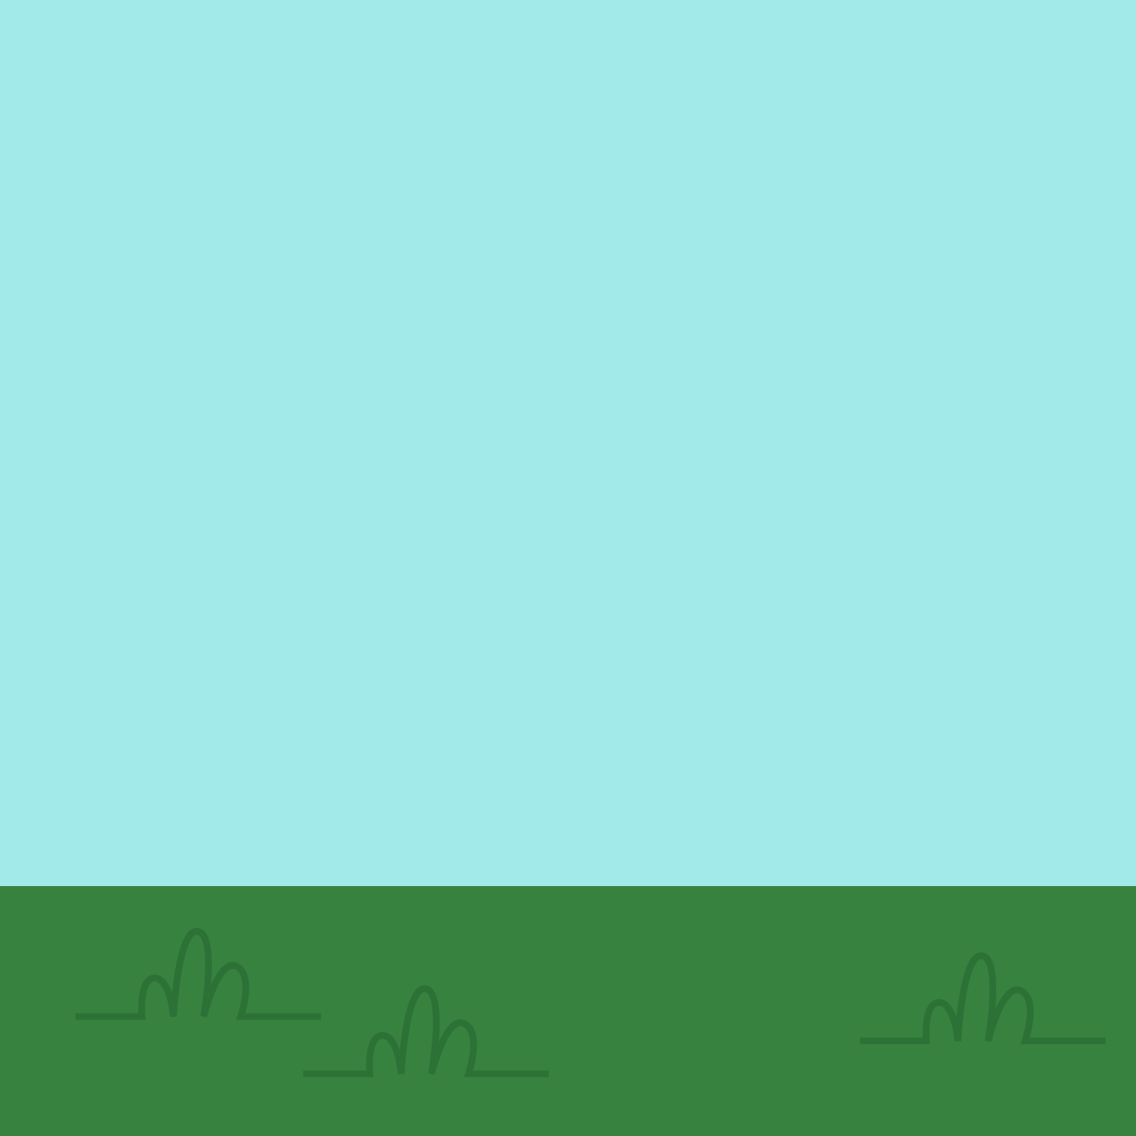 grass-icon-featured-image